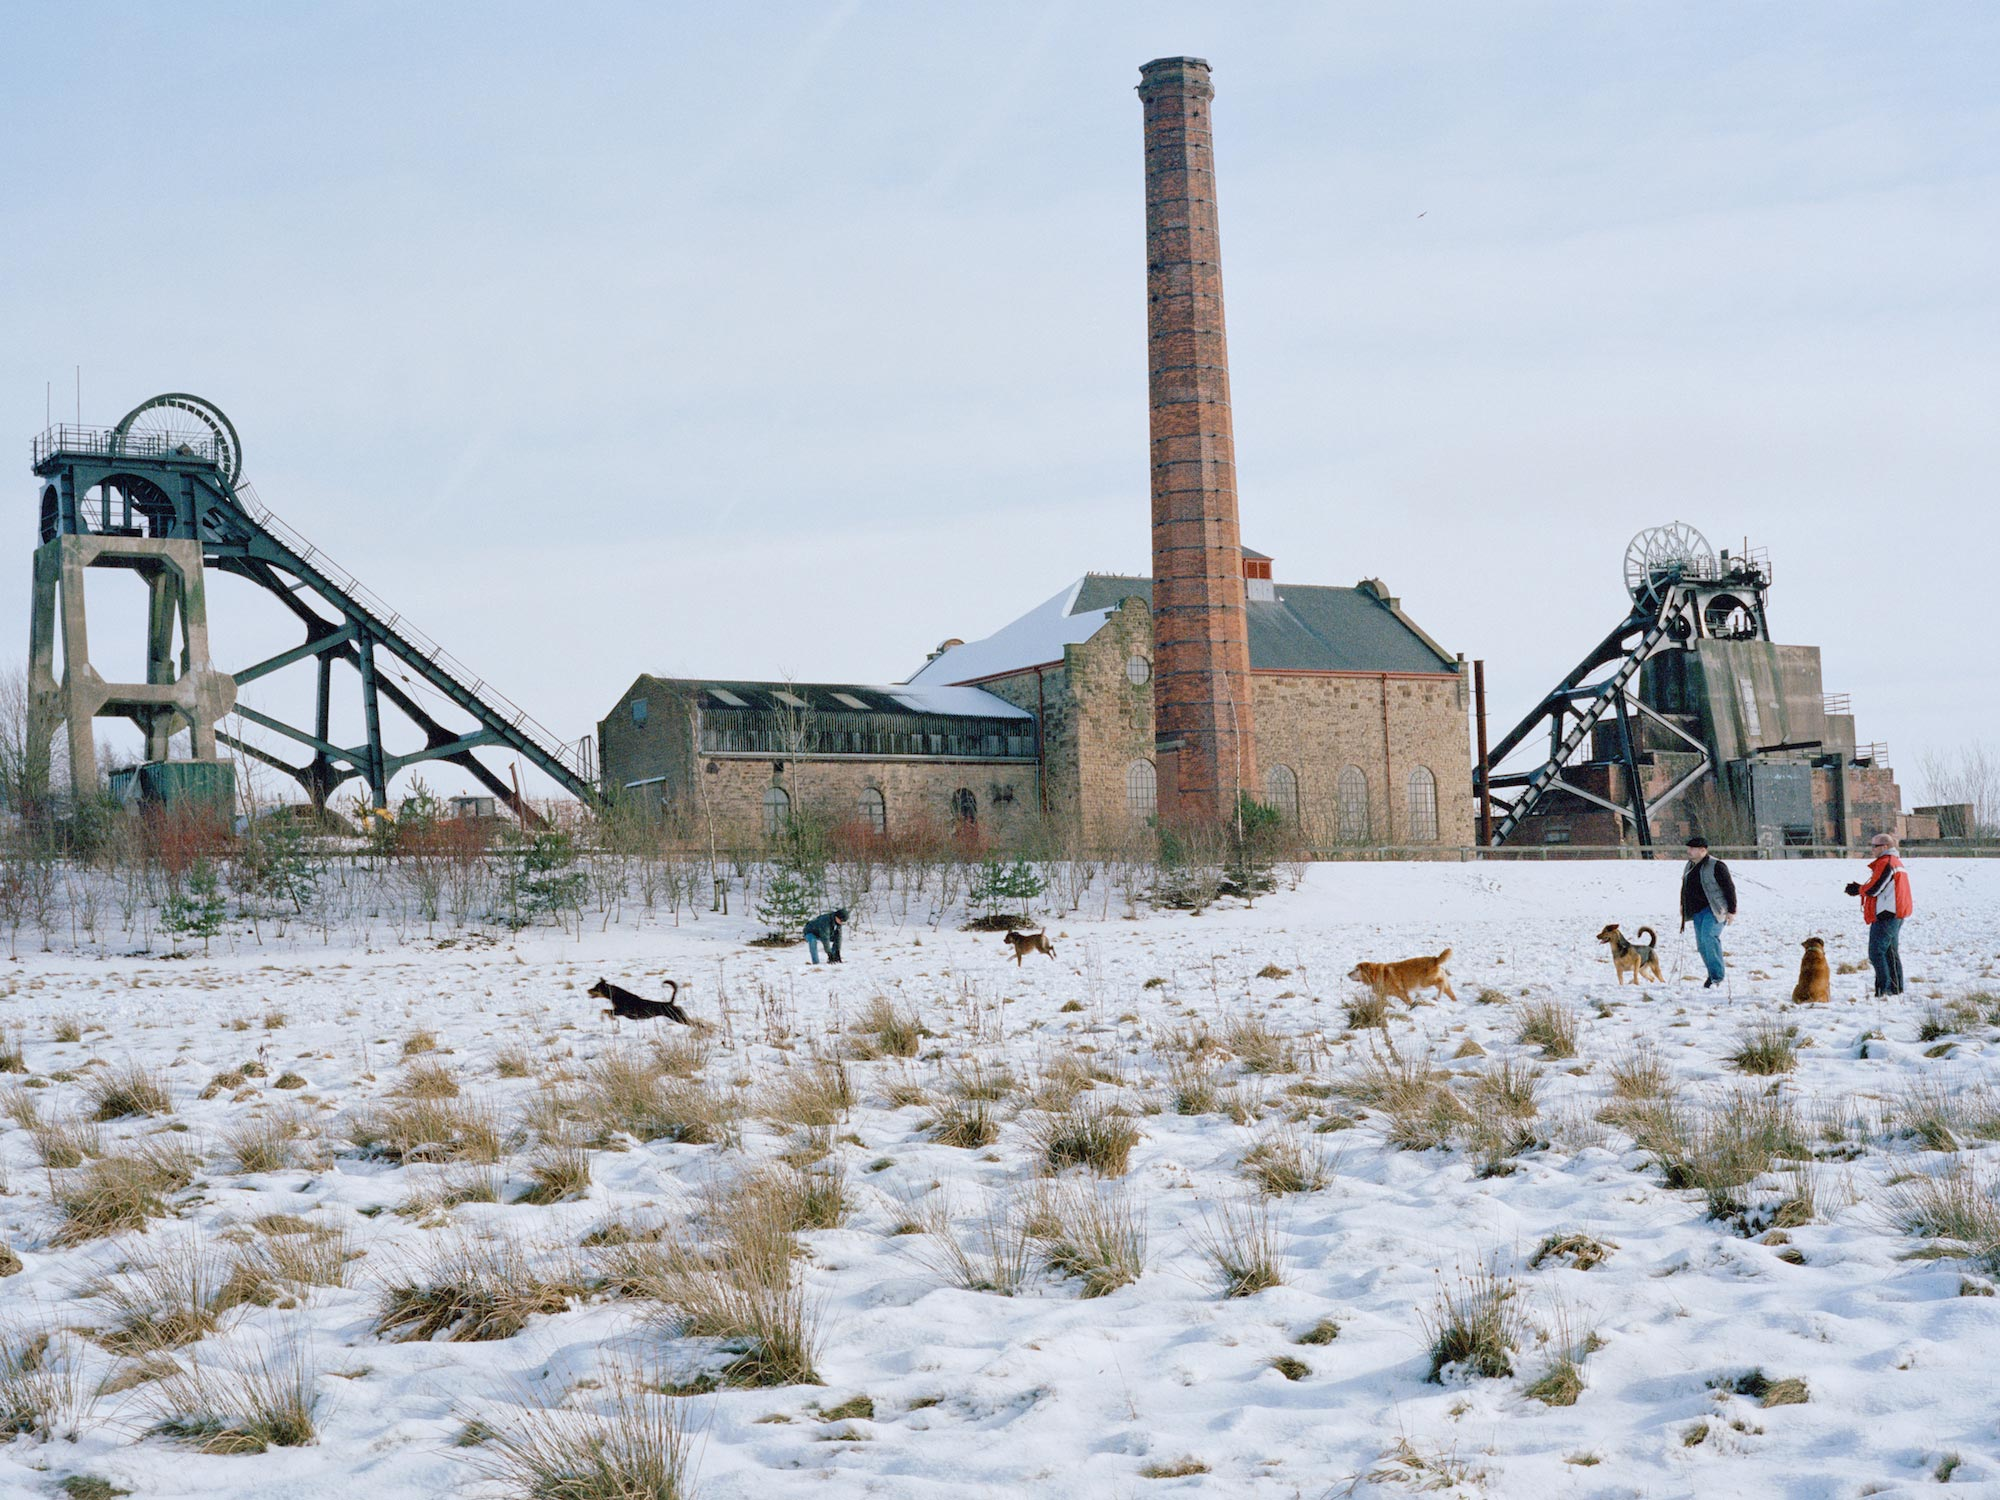 Dogs and their owners playing in the snow, former Pleasley Colliery site.